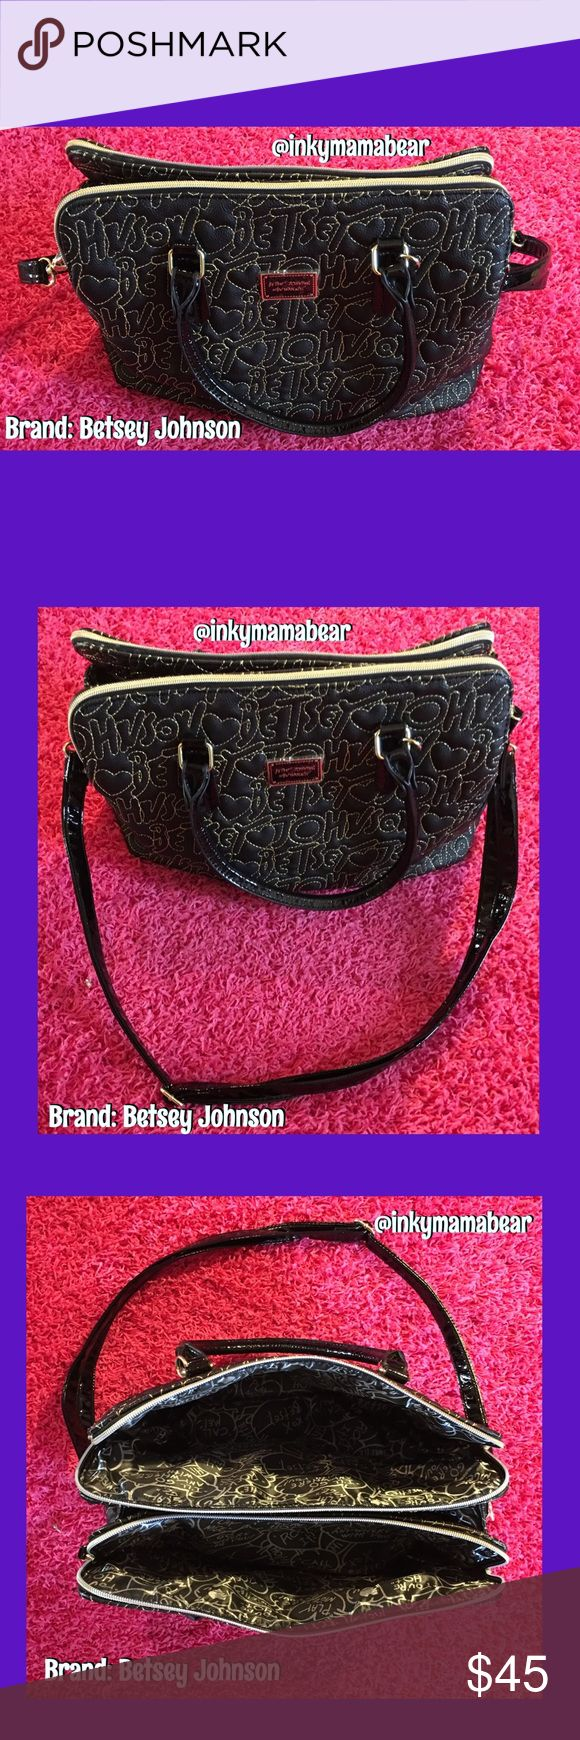 Large Betsey Johnson Purse w. her name all over! Large Betsey Johnson purse with her name stitched across the side, extension strap included and tons of really cool pocket space inside. Very, very clean...hardly used at all. This bag is like new just without the tags. NO OFFERS, all will be denied. Betsey Johnson Bags